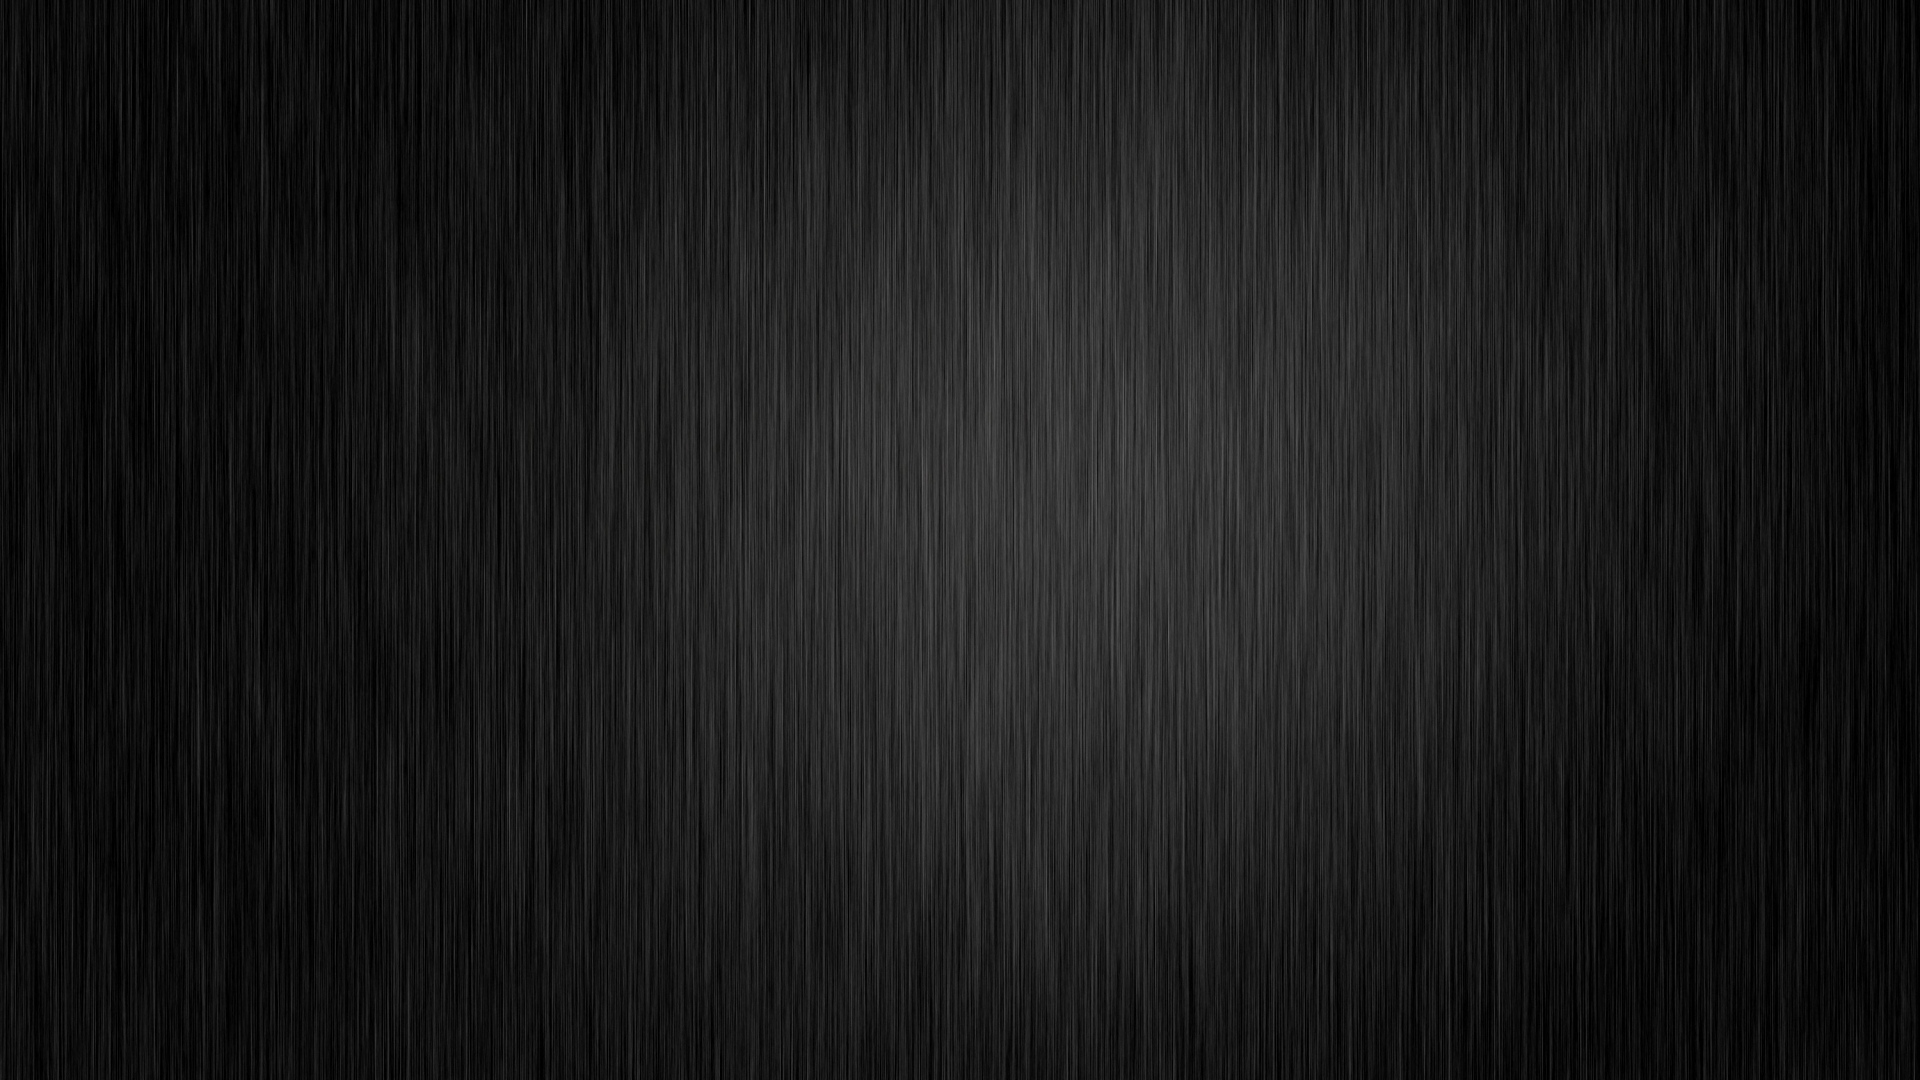 Download Wallpapers With Black Background Gallery